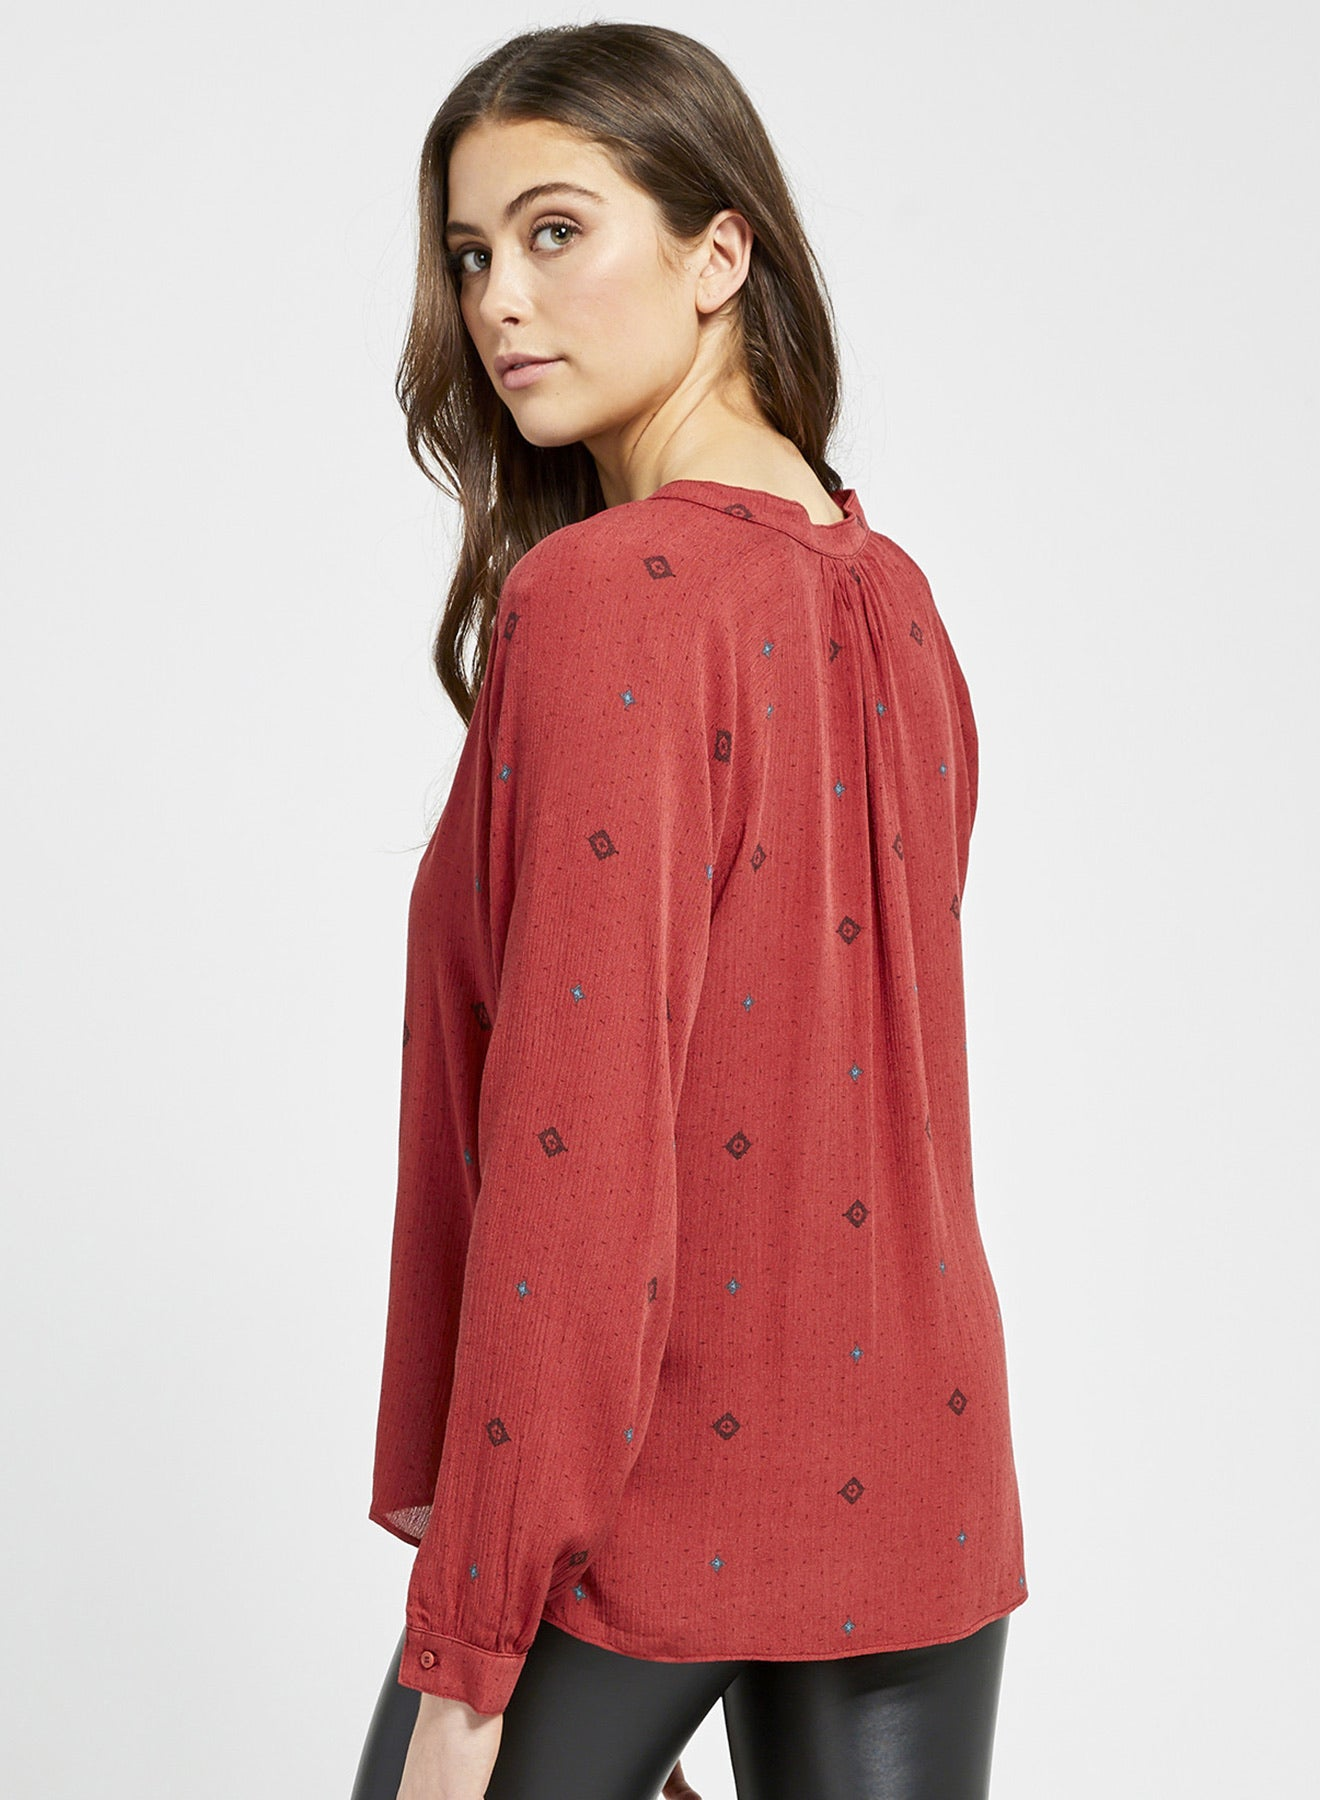 Gentle Fawn Meadow Blouse